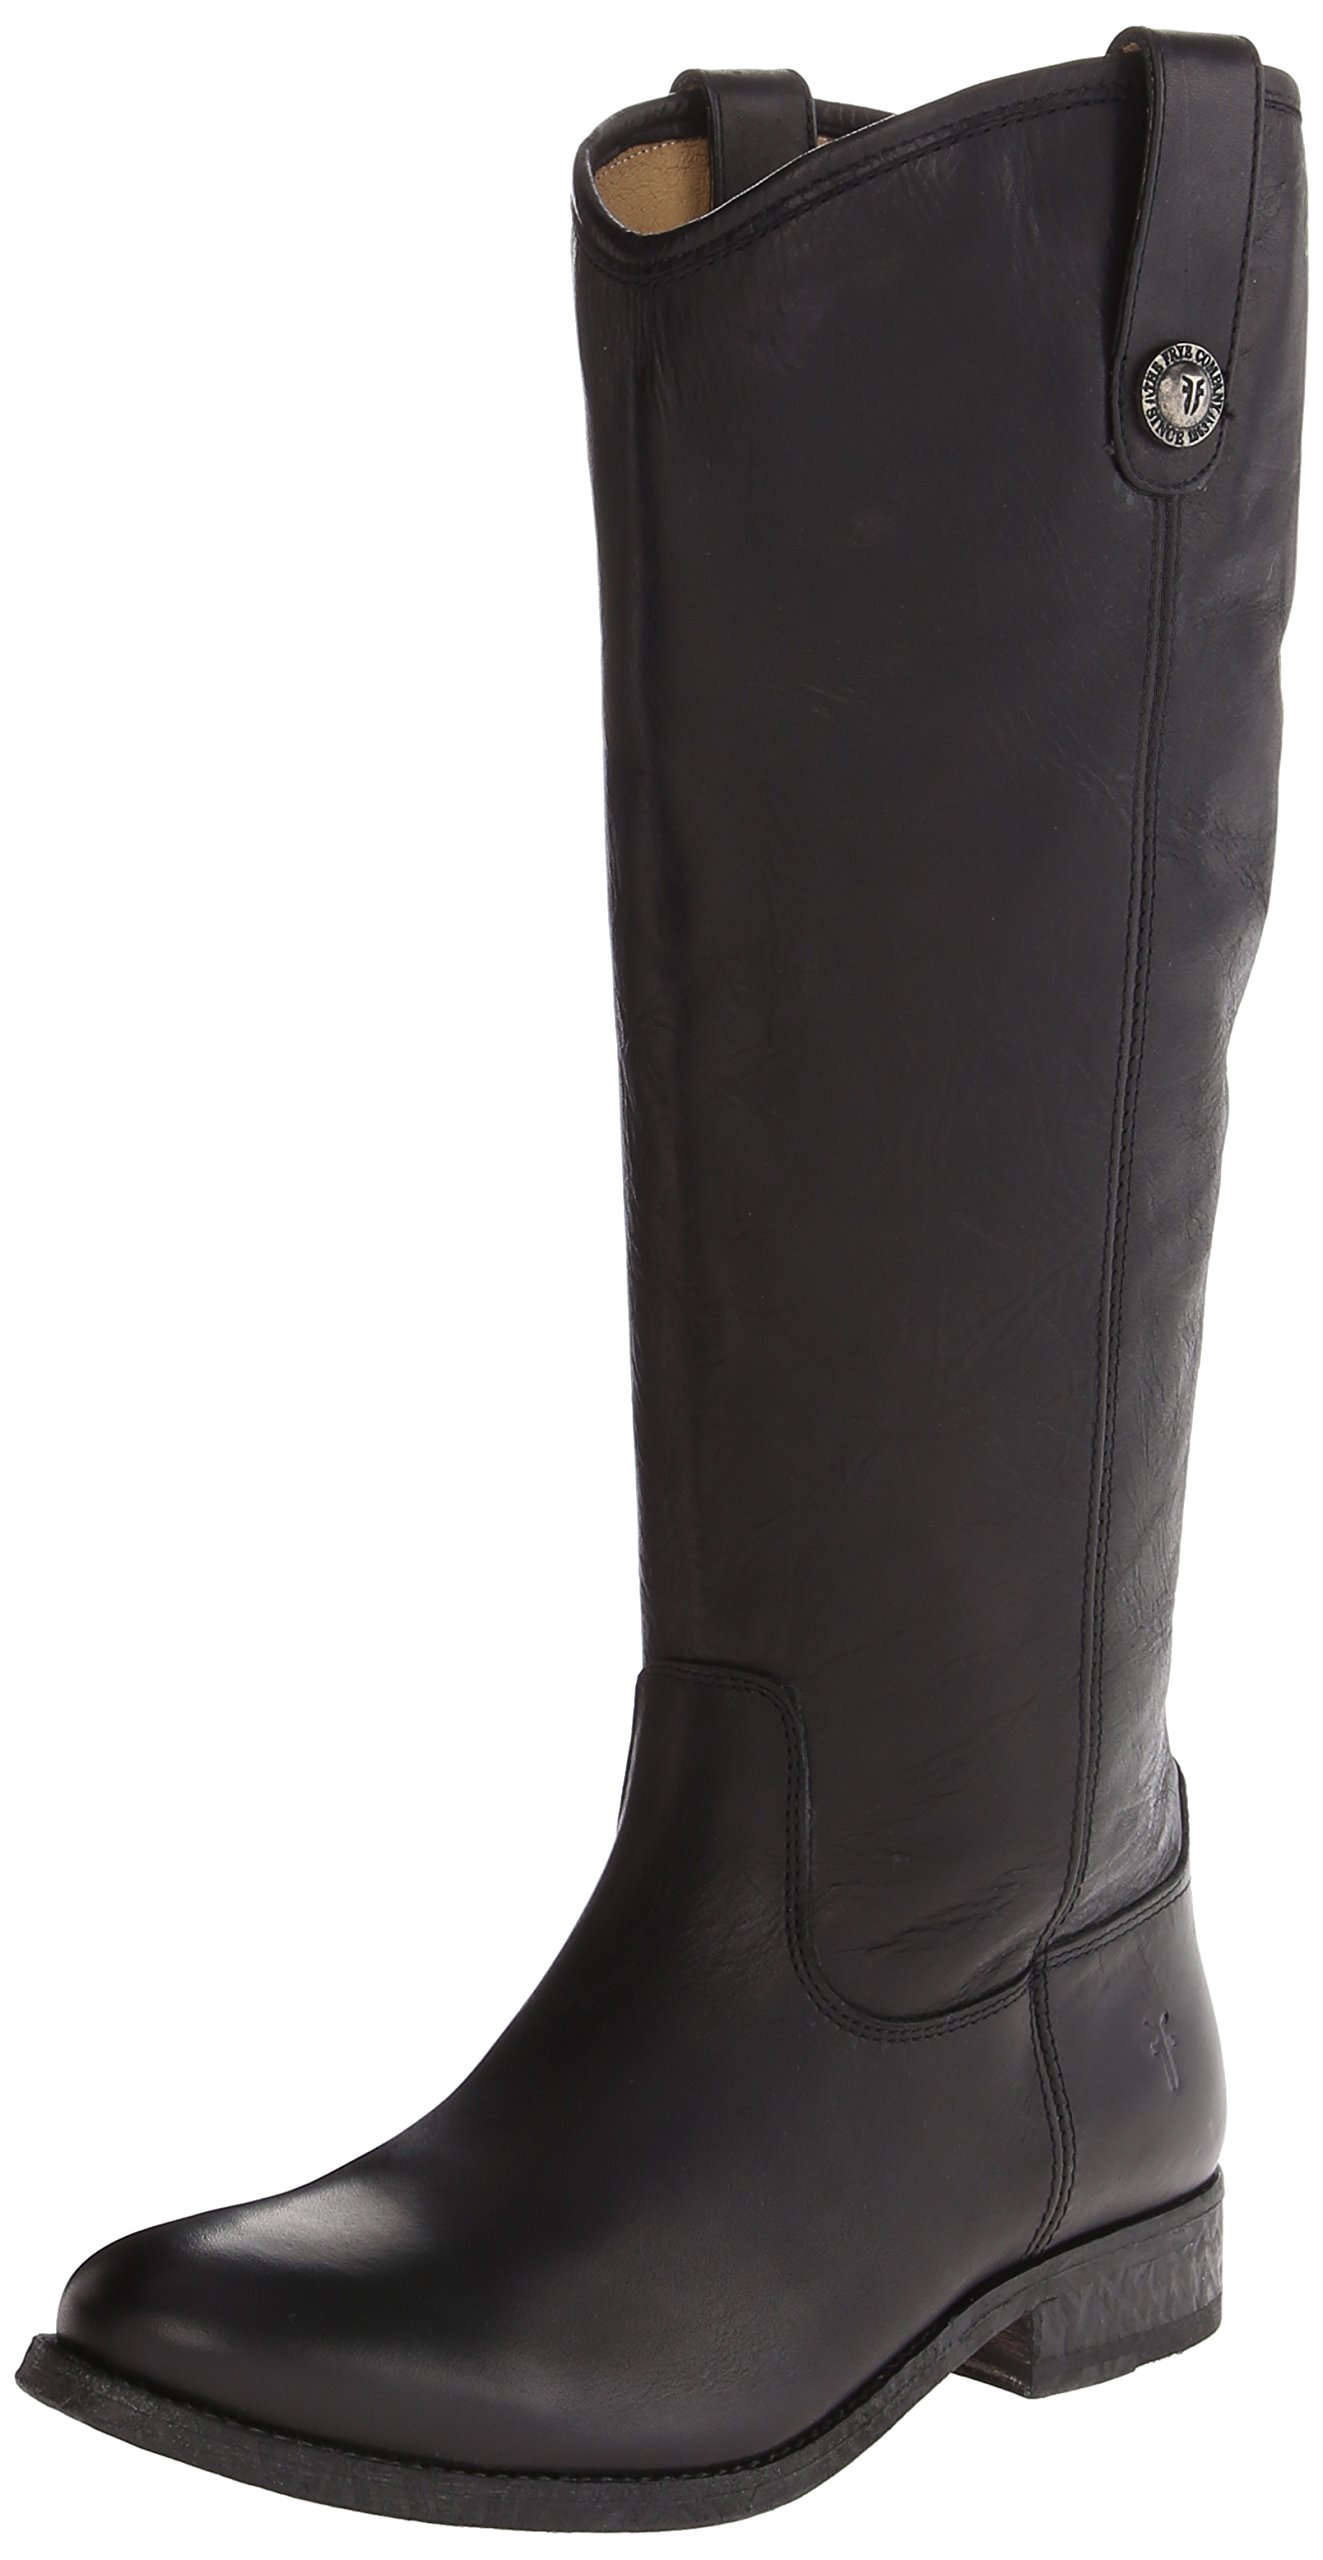 FRYE Women's Melissa Button Boot, Black Washed Antique Pull-Up, 10 M US